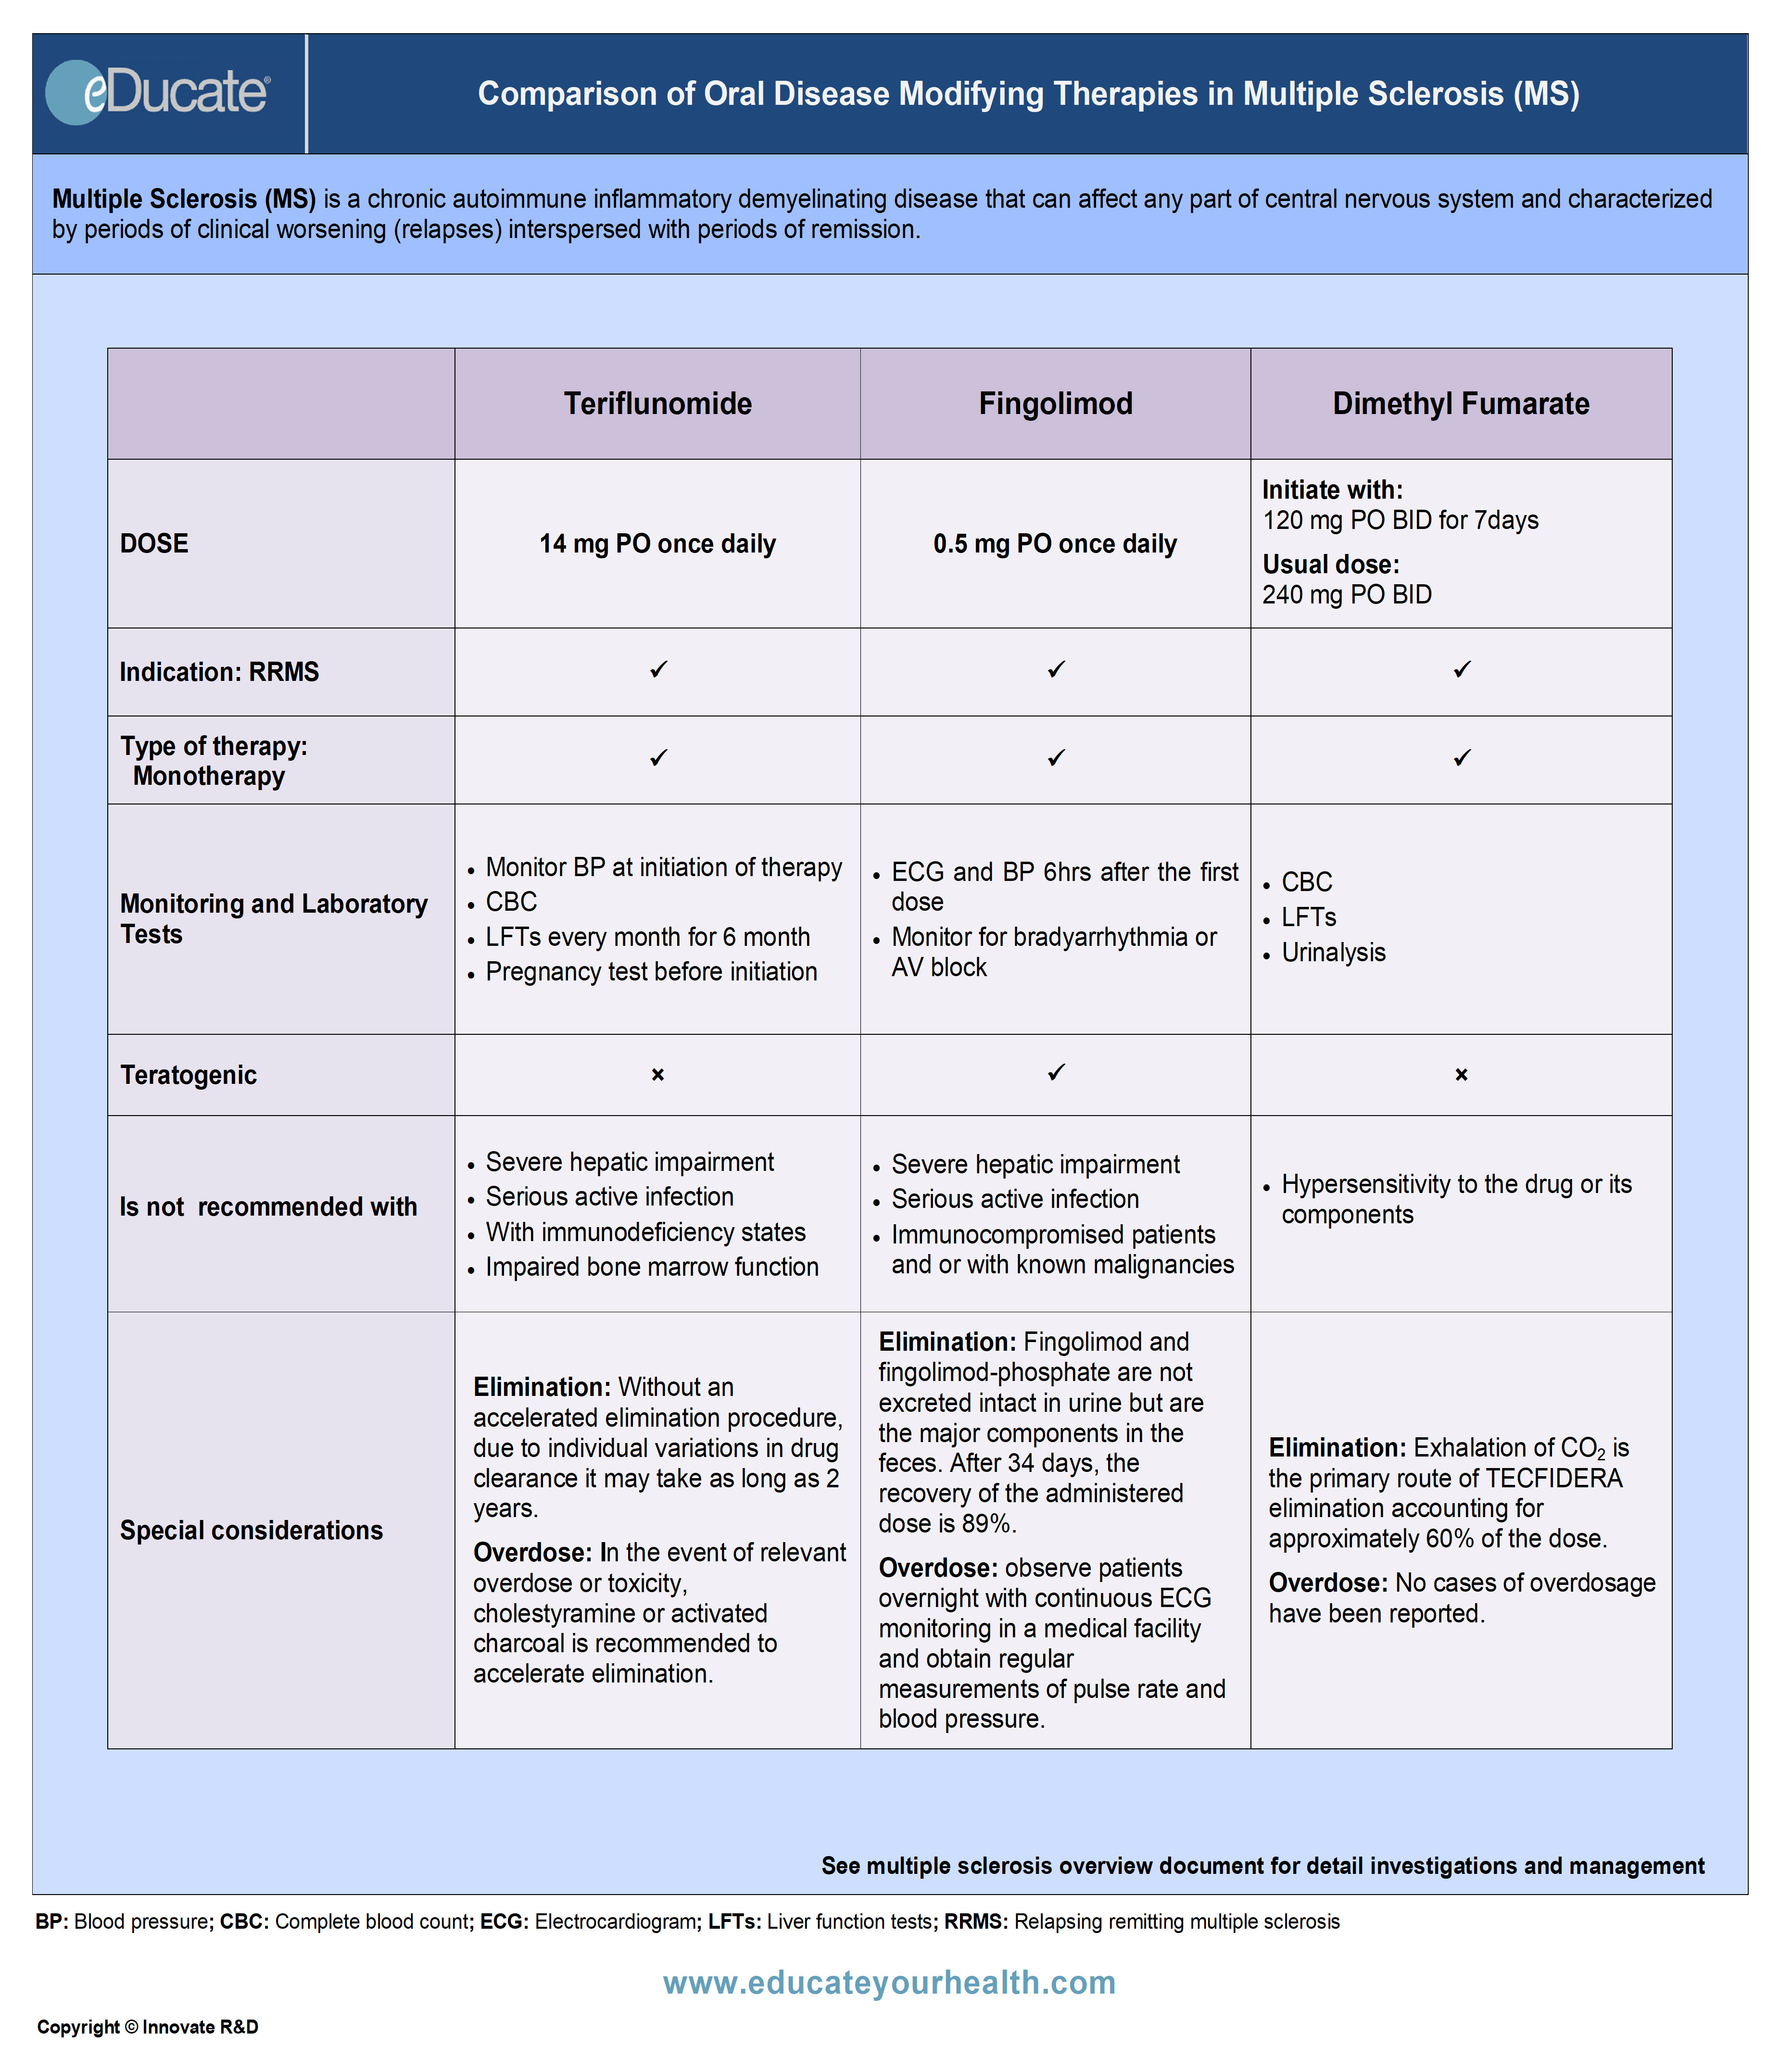 Comparison of Oral Disease-Modifying Therapies in Multiple Sclerosis-QR